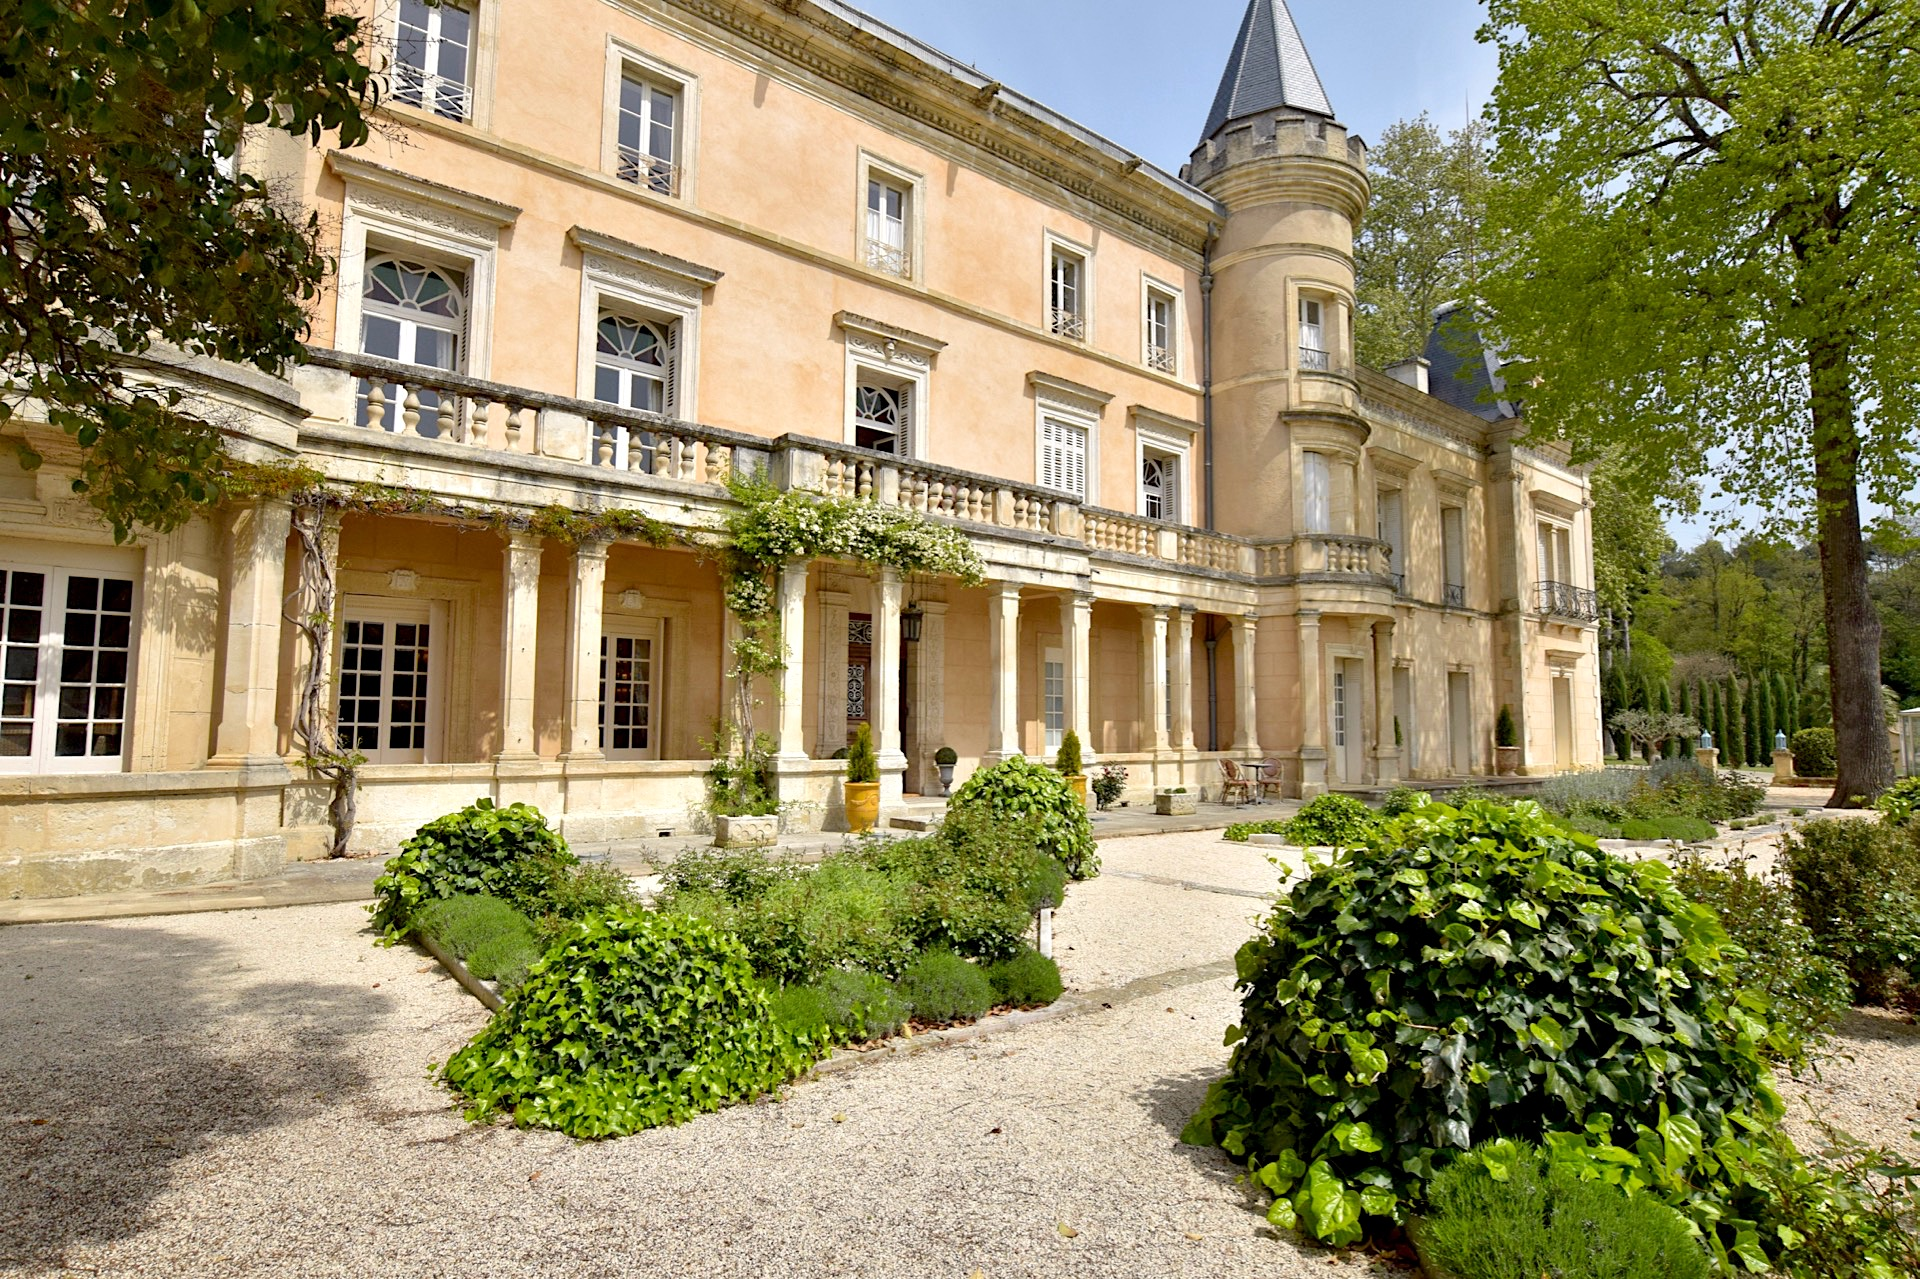 Uzès, magnificent Château on 2 acres landscaped gardens, 92,600sq ft living space, heated pool, tennis court and lily pond